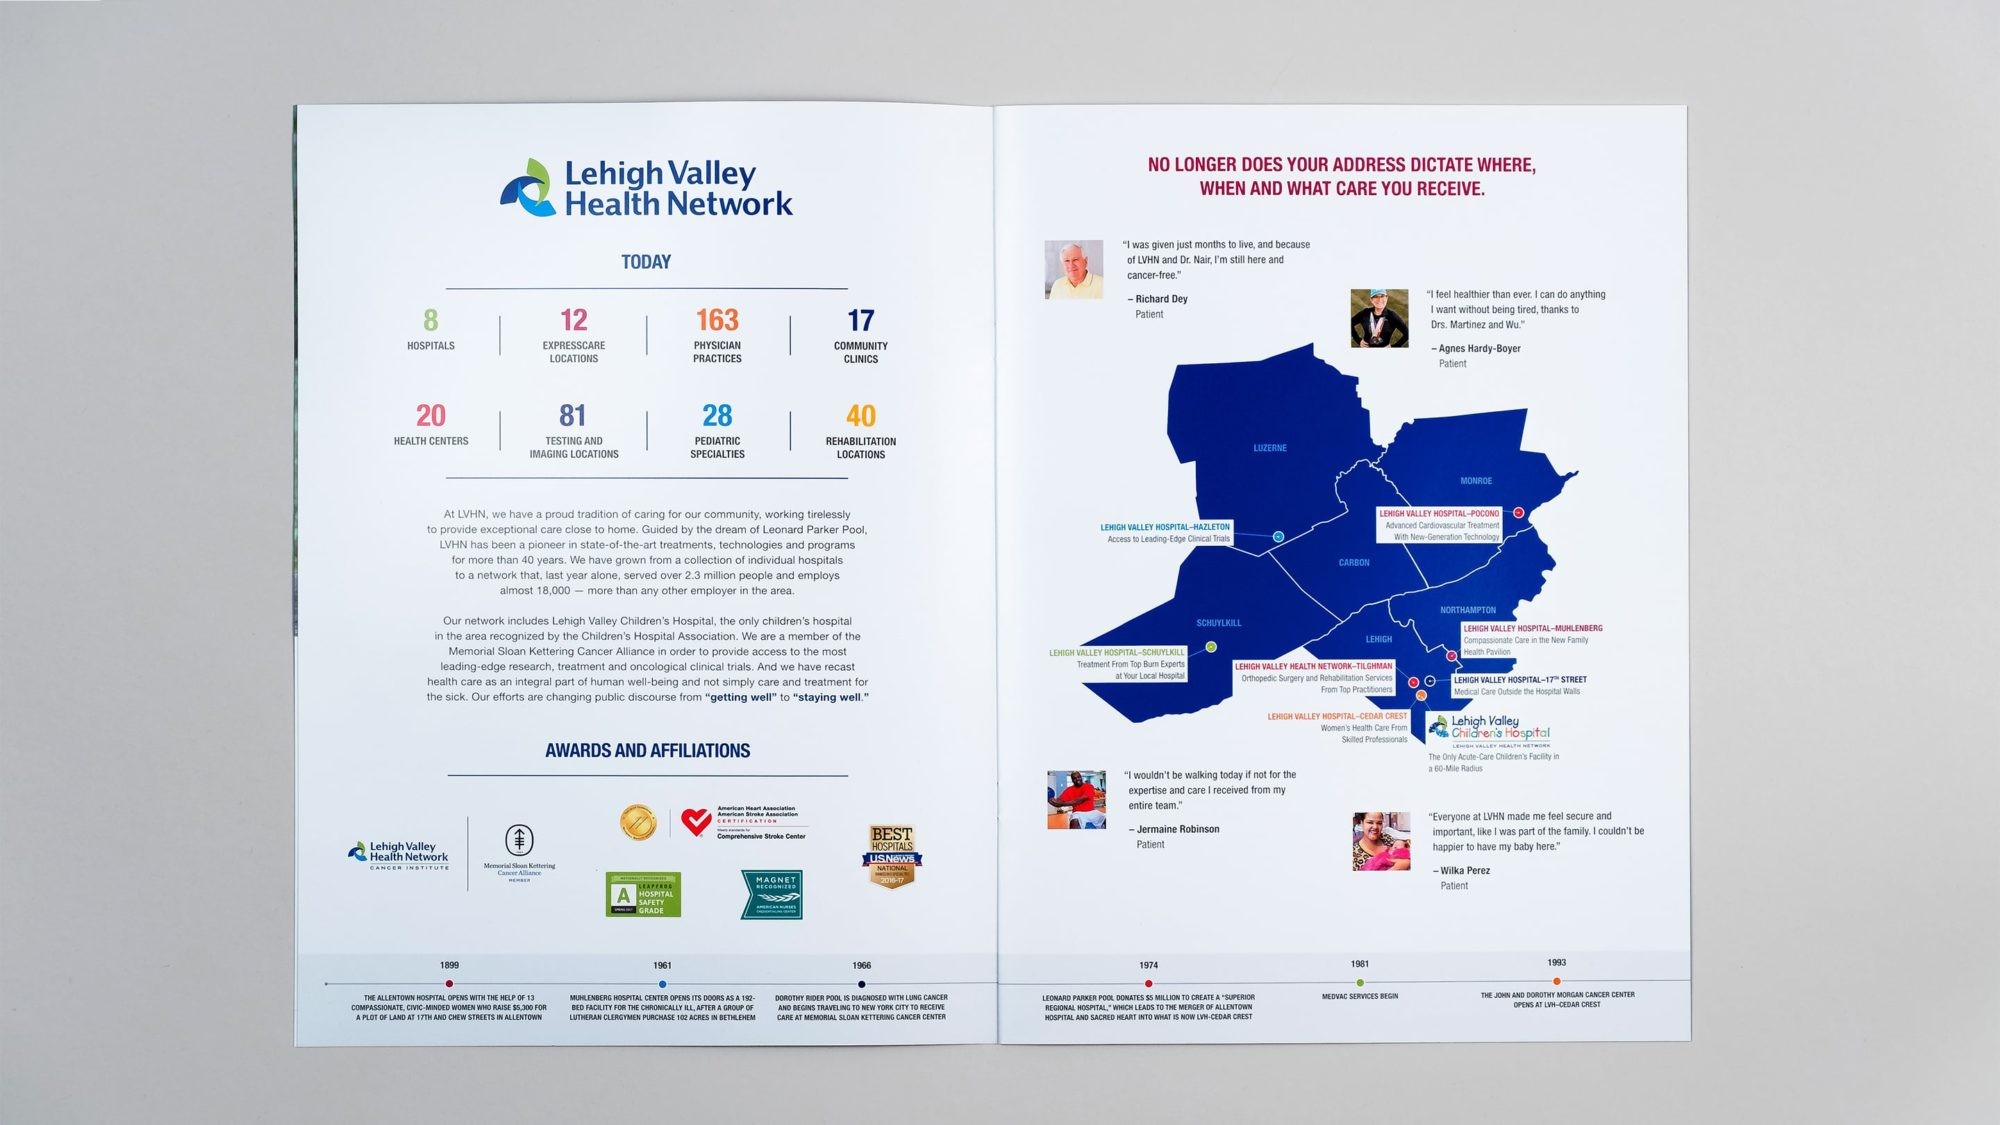 Interior spread showing infographic with stats on the network and a map of hospital locations